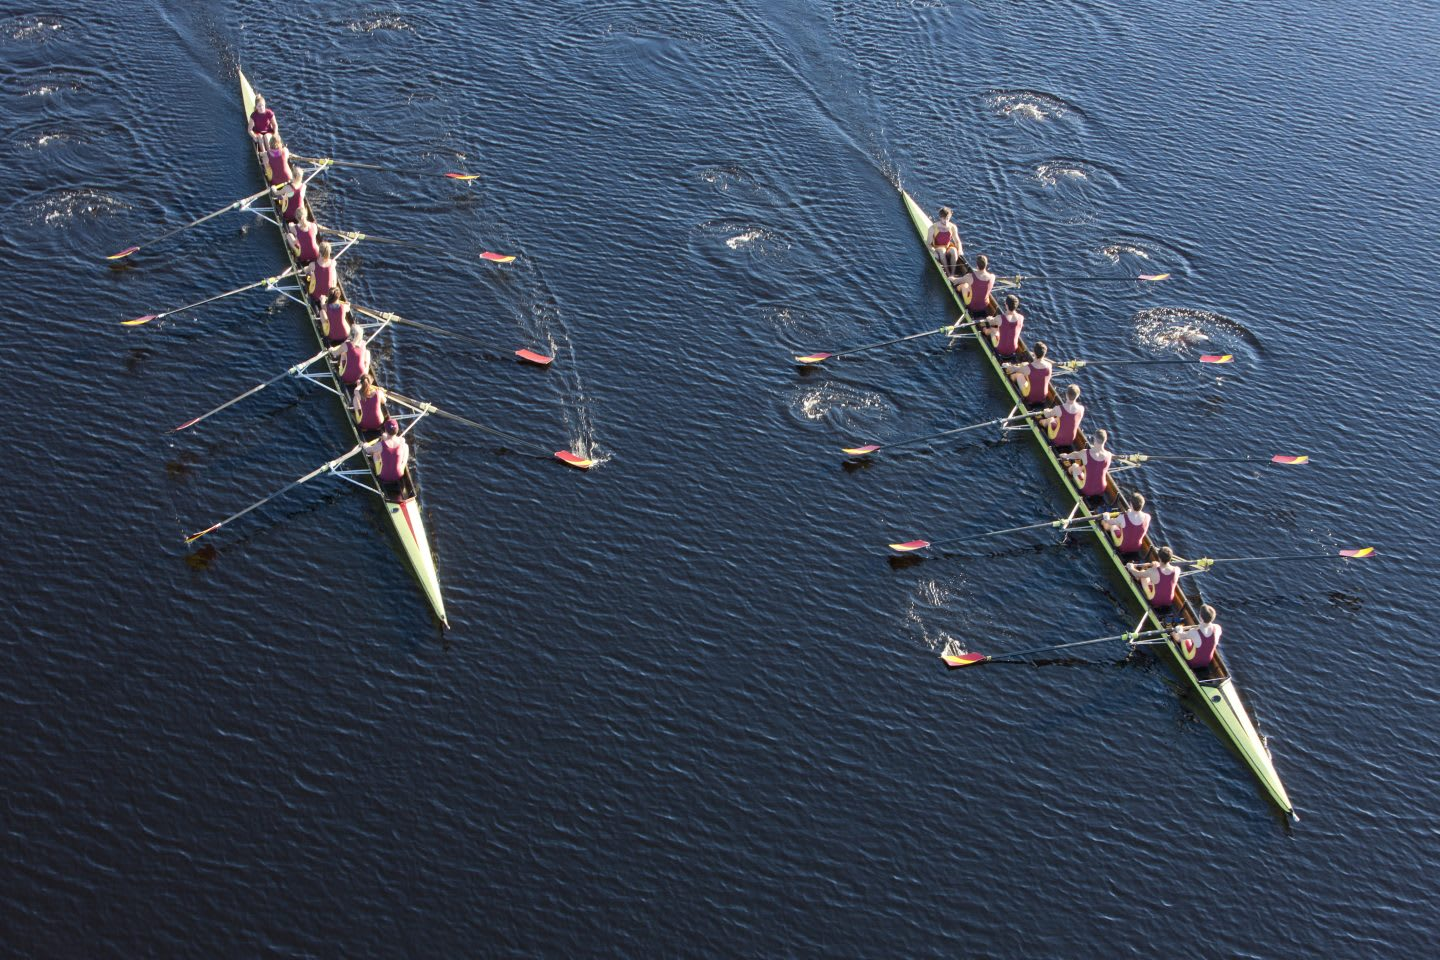 Elevated view of two rowing eights in water, rowing, rowers, sports, fitness, teamwork, endurance, race